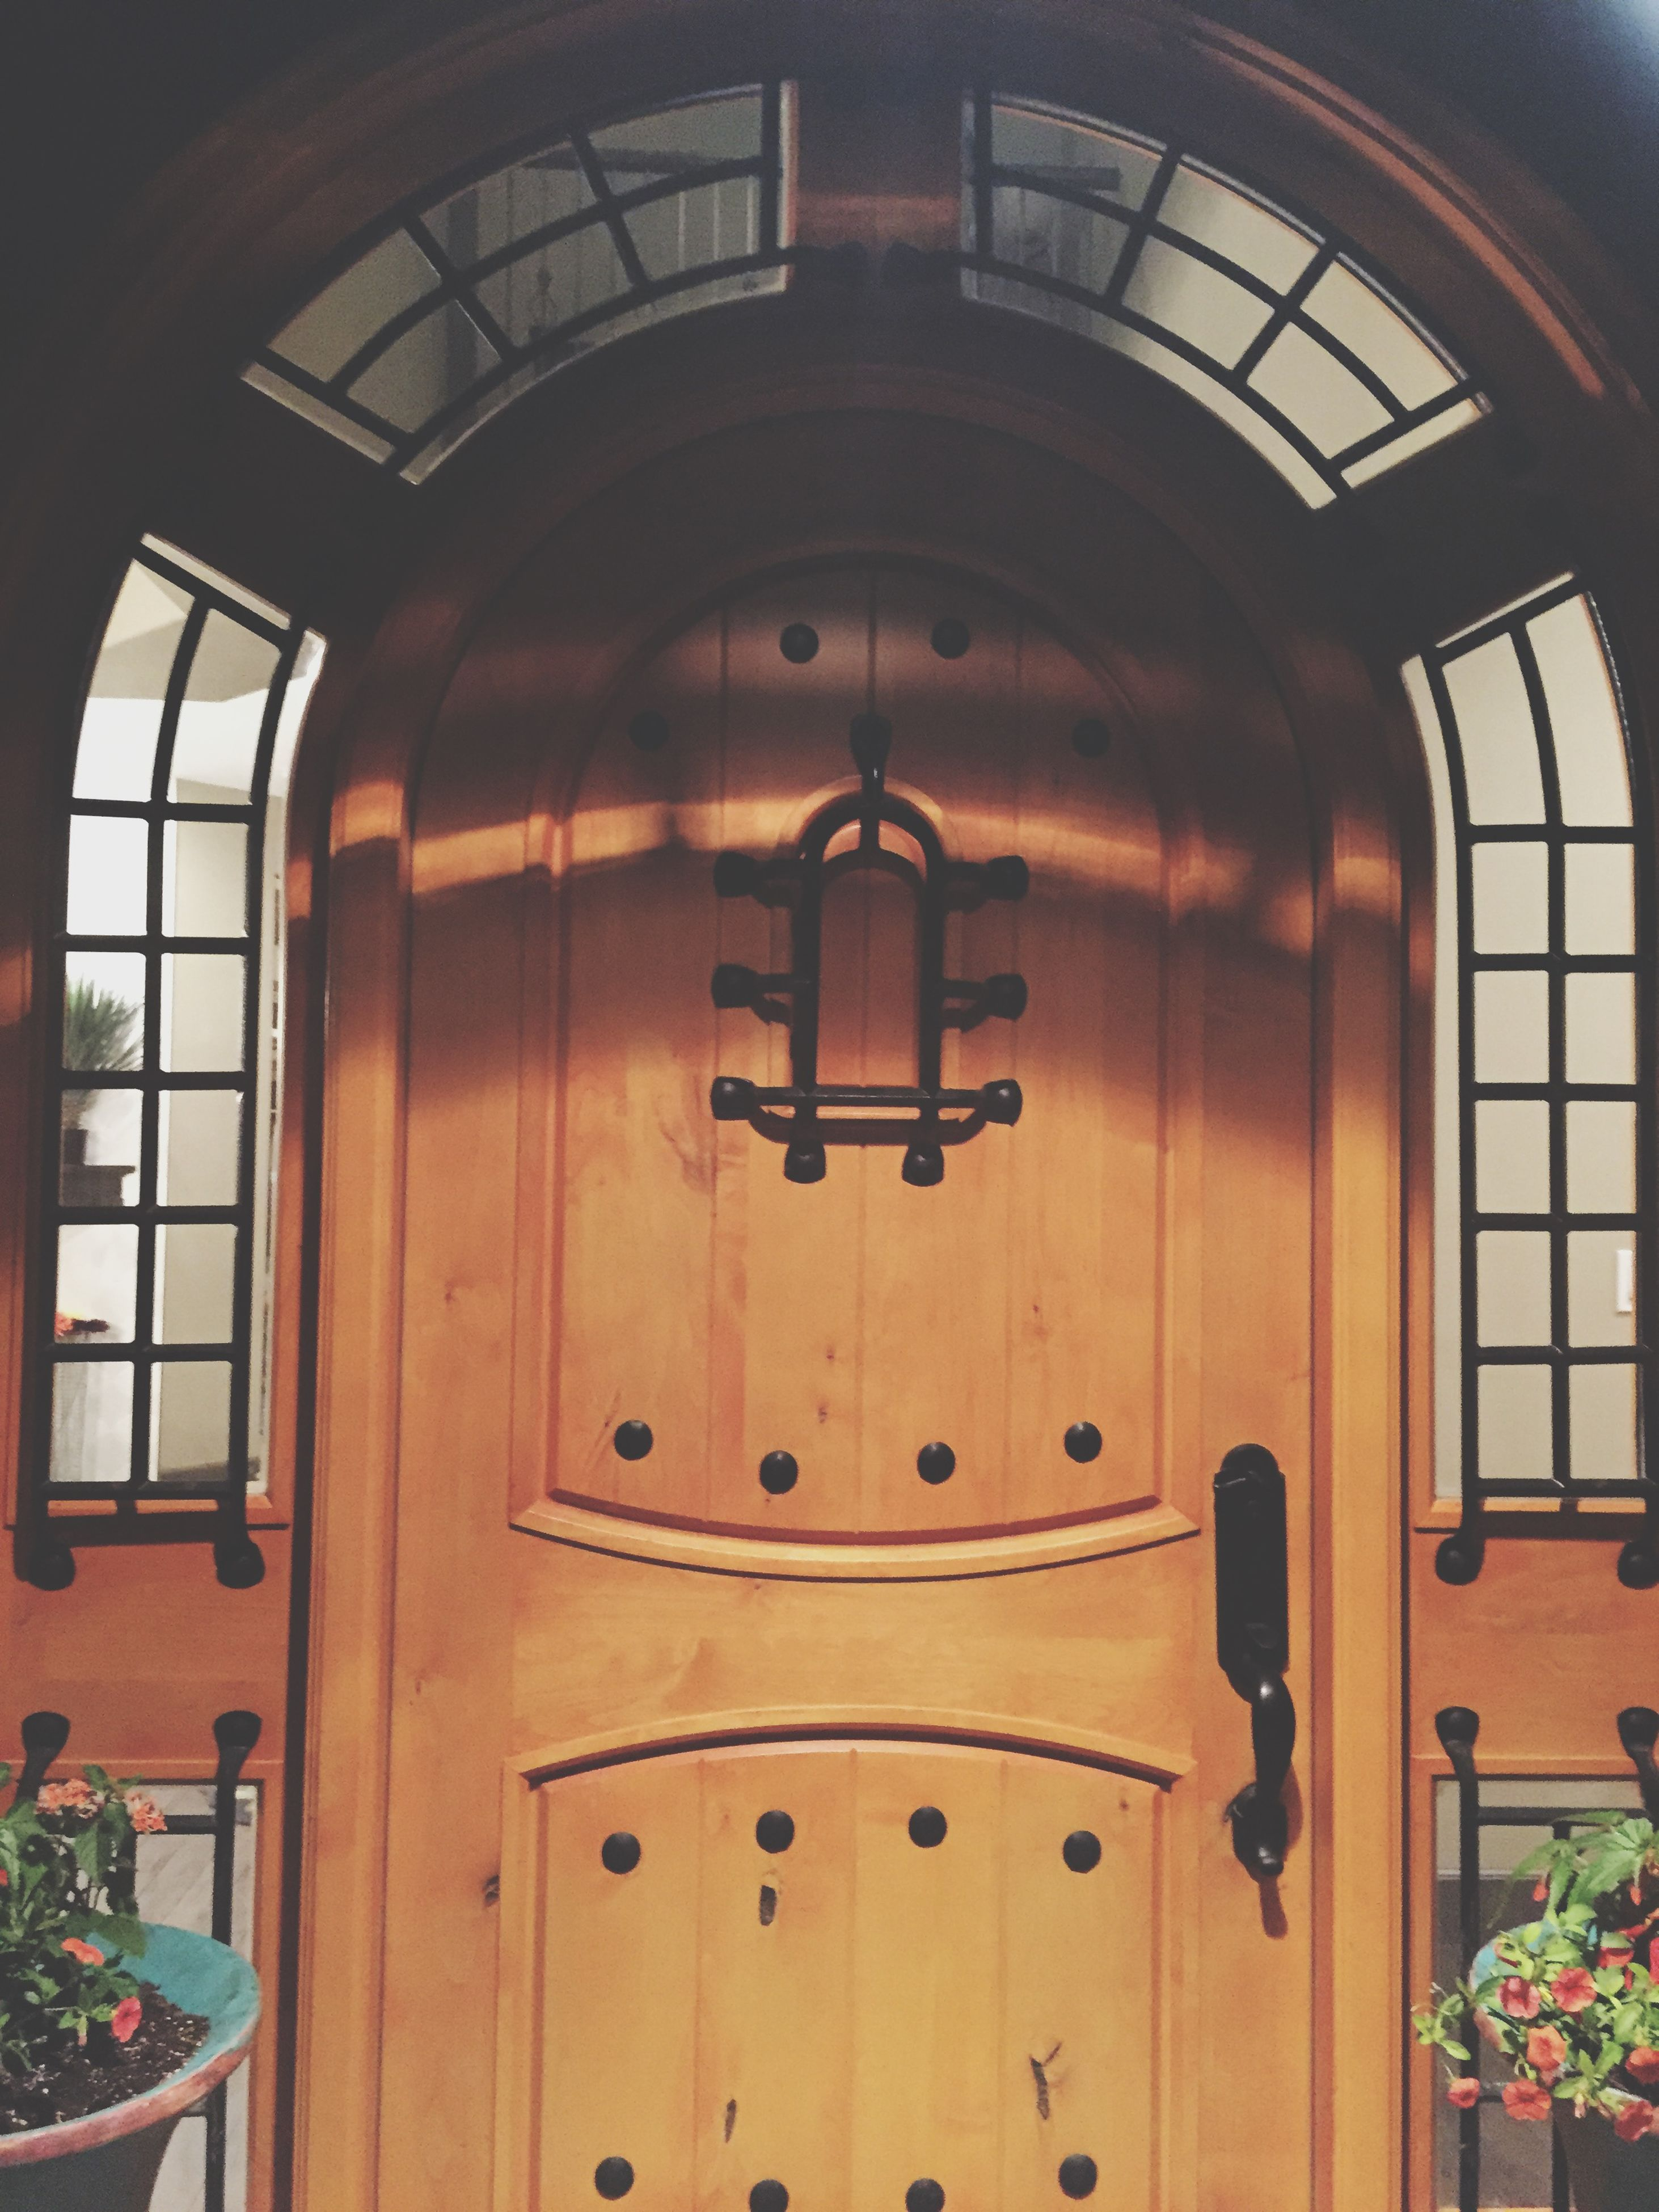 door, architecture, built structure, closed, wood - material, building exterior, house, entrance, safety, protection, arch, window, red, security, wooden, no people, day, old, wood, outdoors